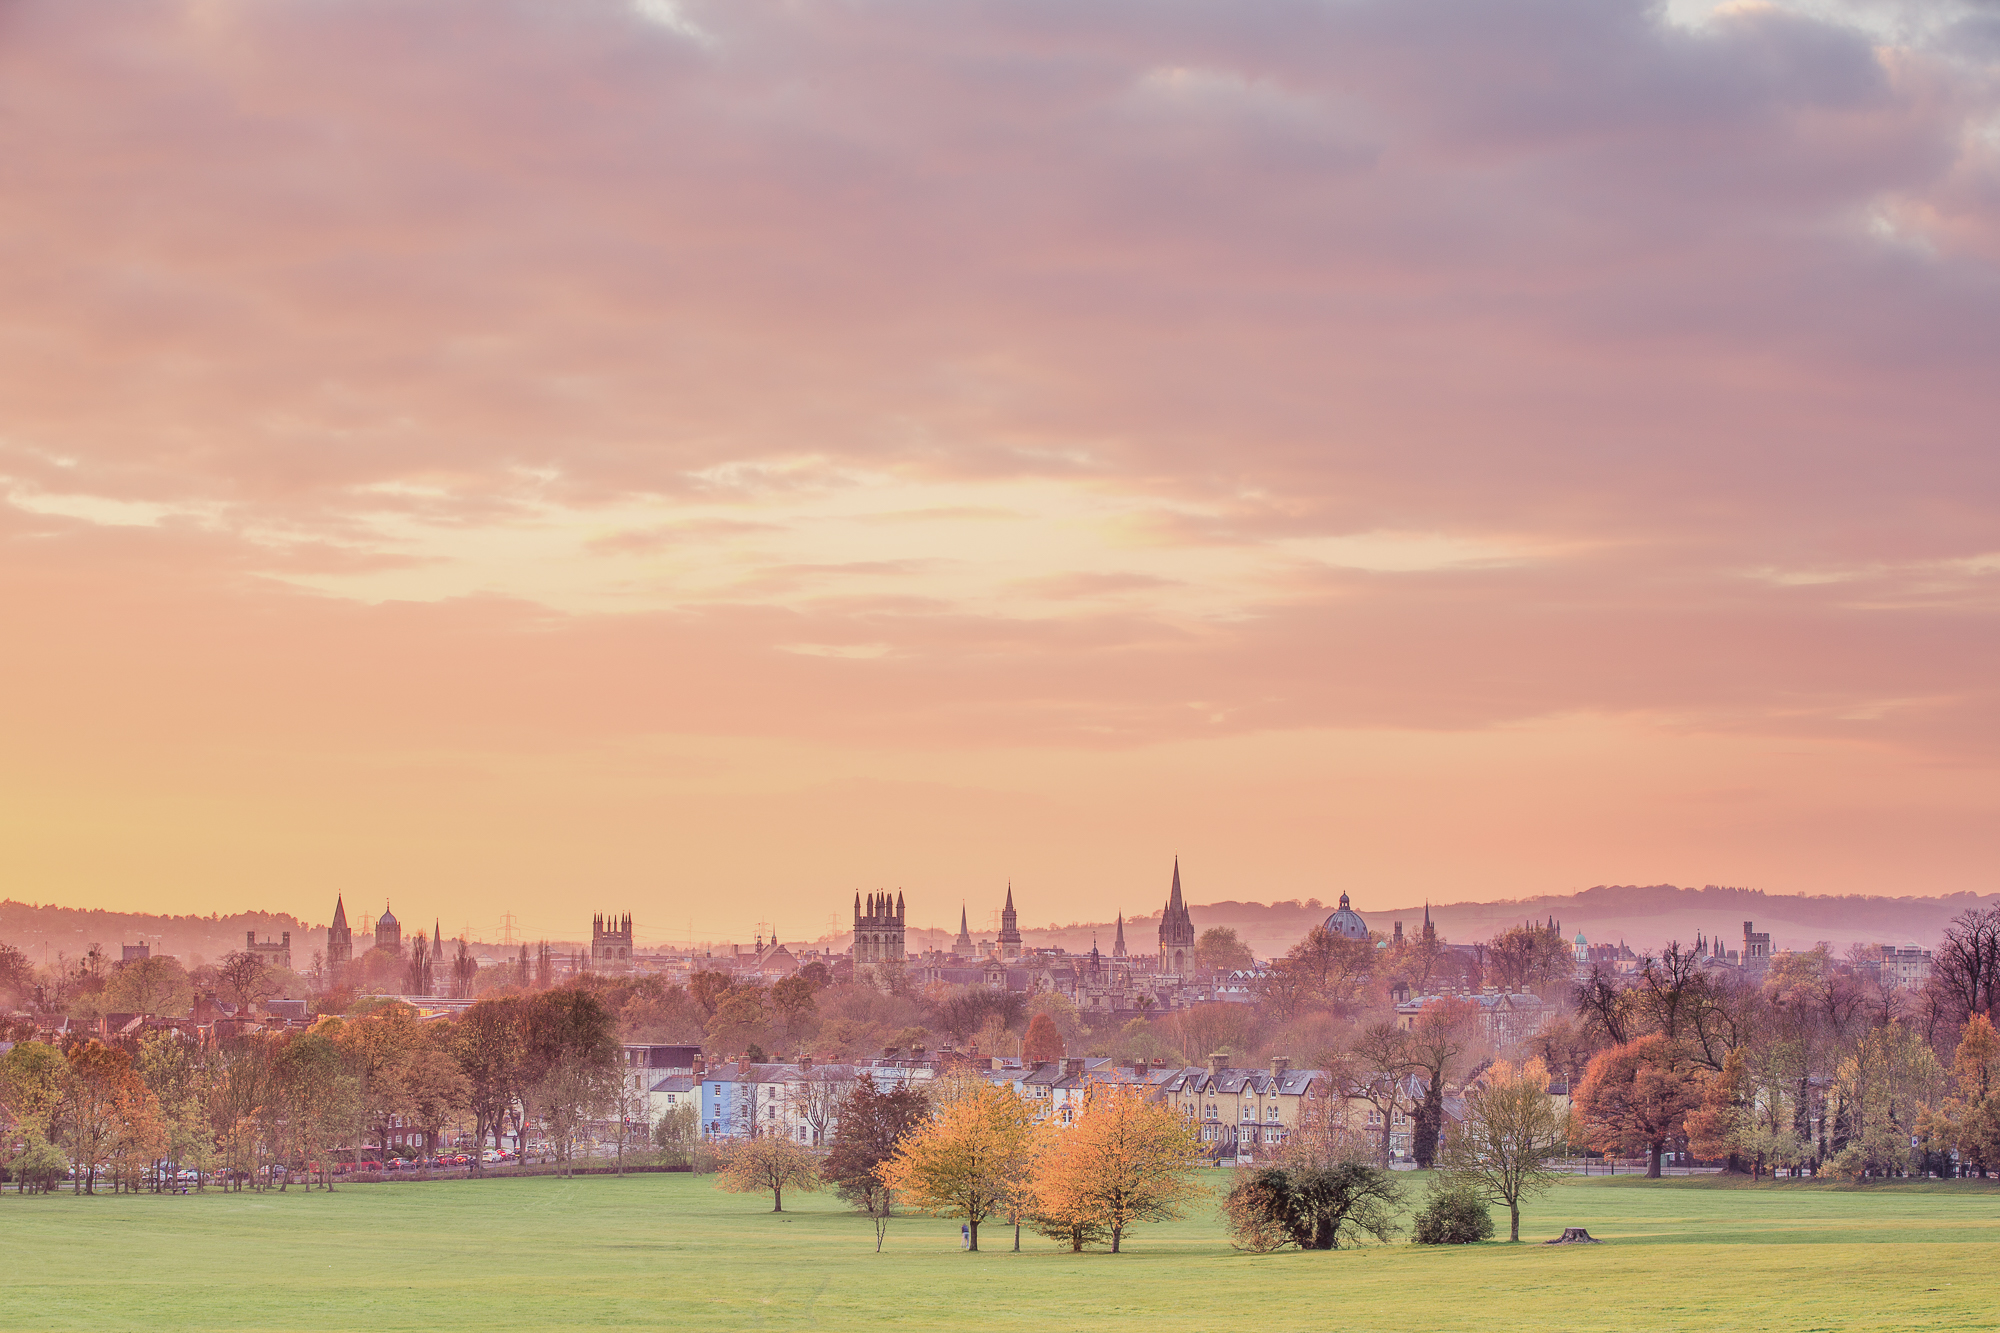 Oxford at Sunrise